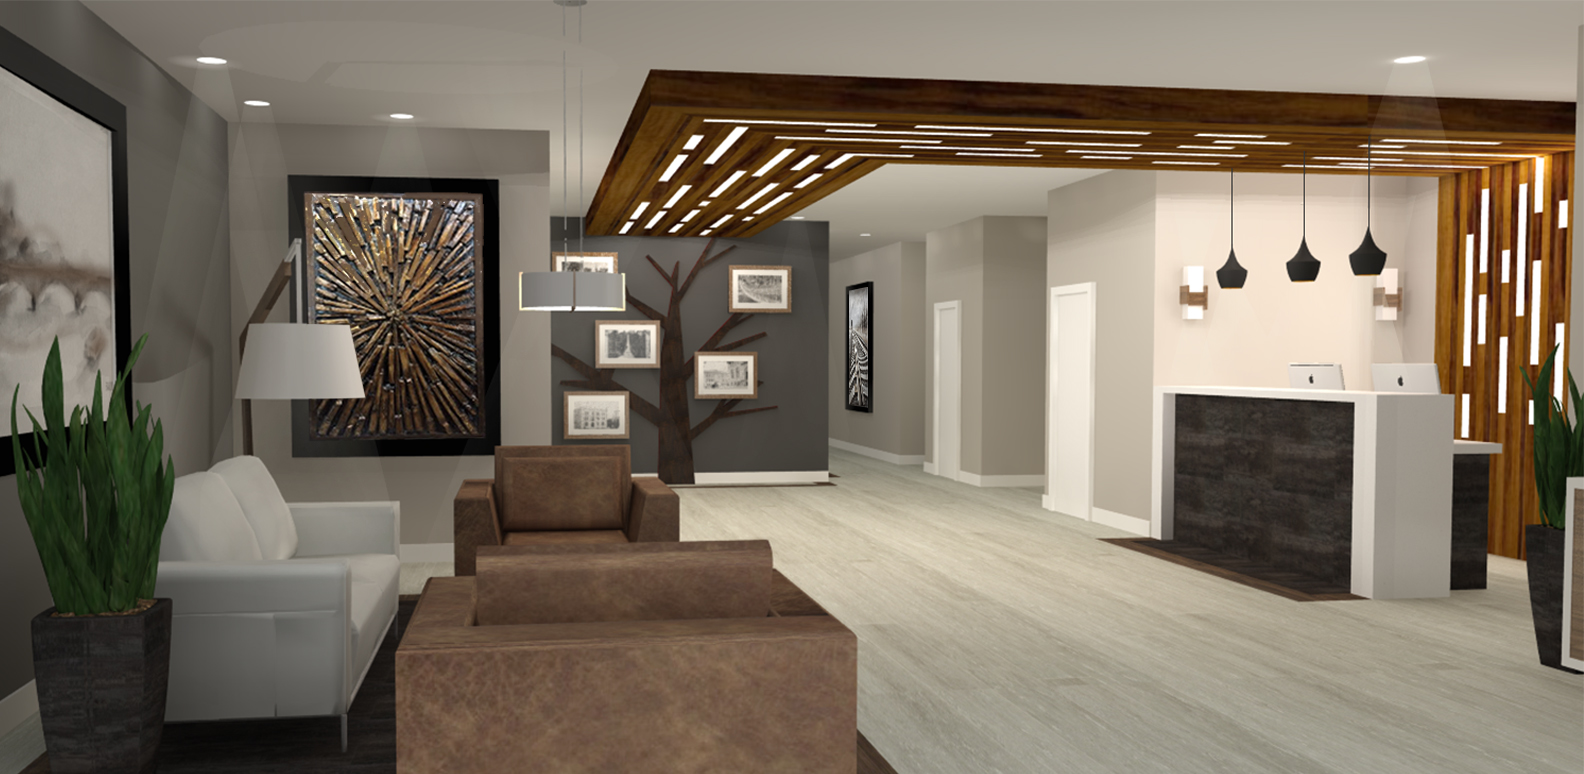 Steel Creek - Lobby - Rendered July 10